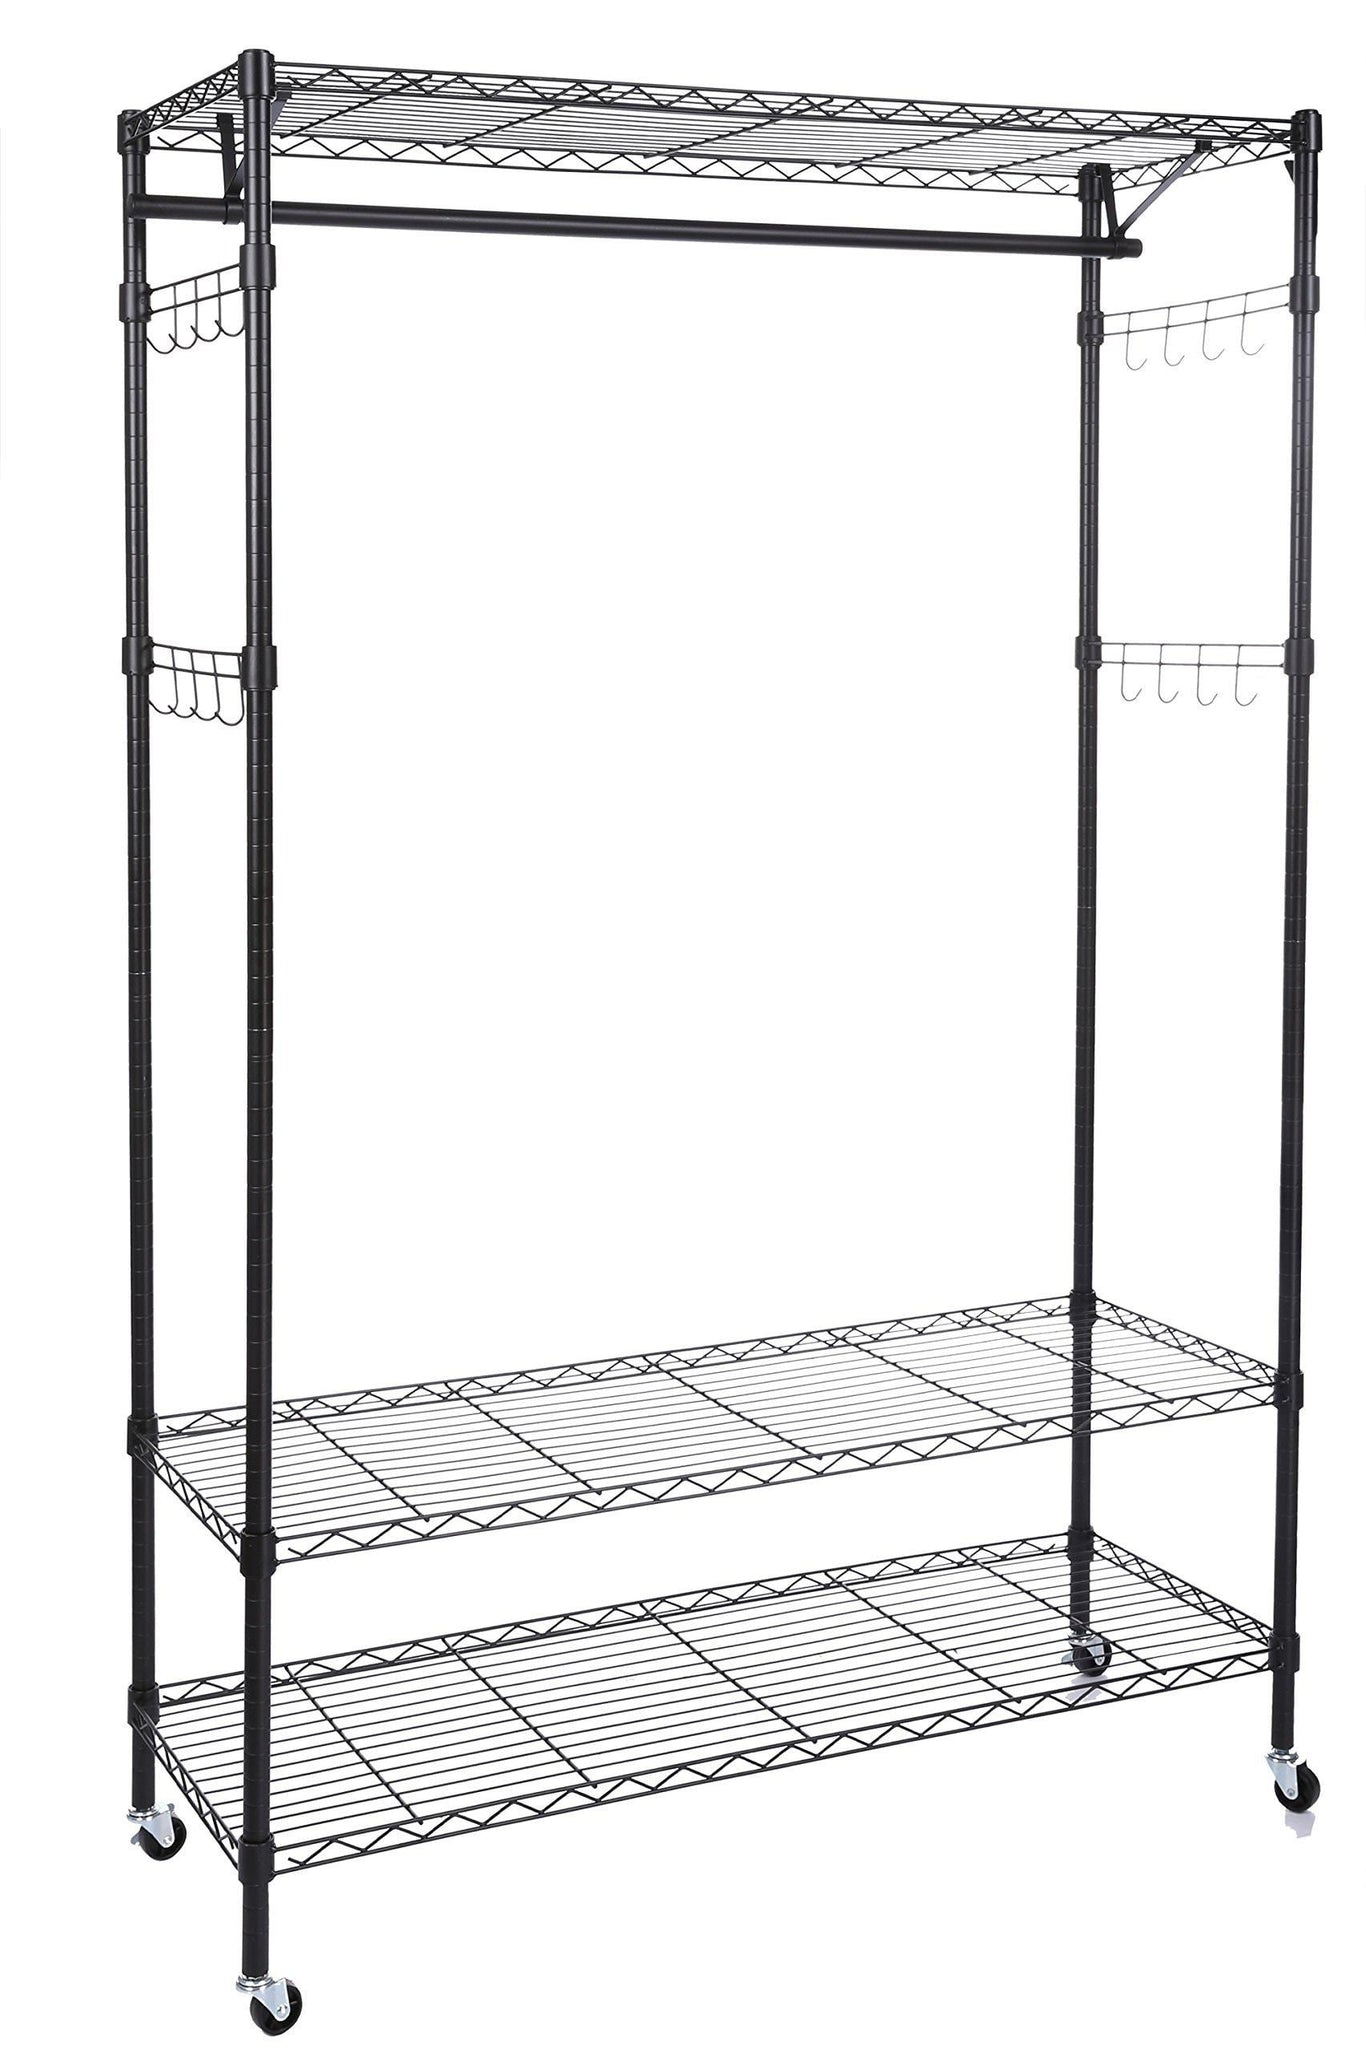 New homdox 3 tiers big size heavy duty wire shelving unit garment rack with hanger bar wheels 2 pair side hooks black